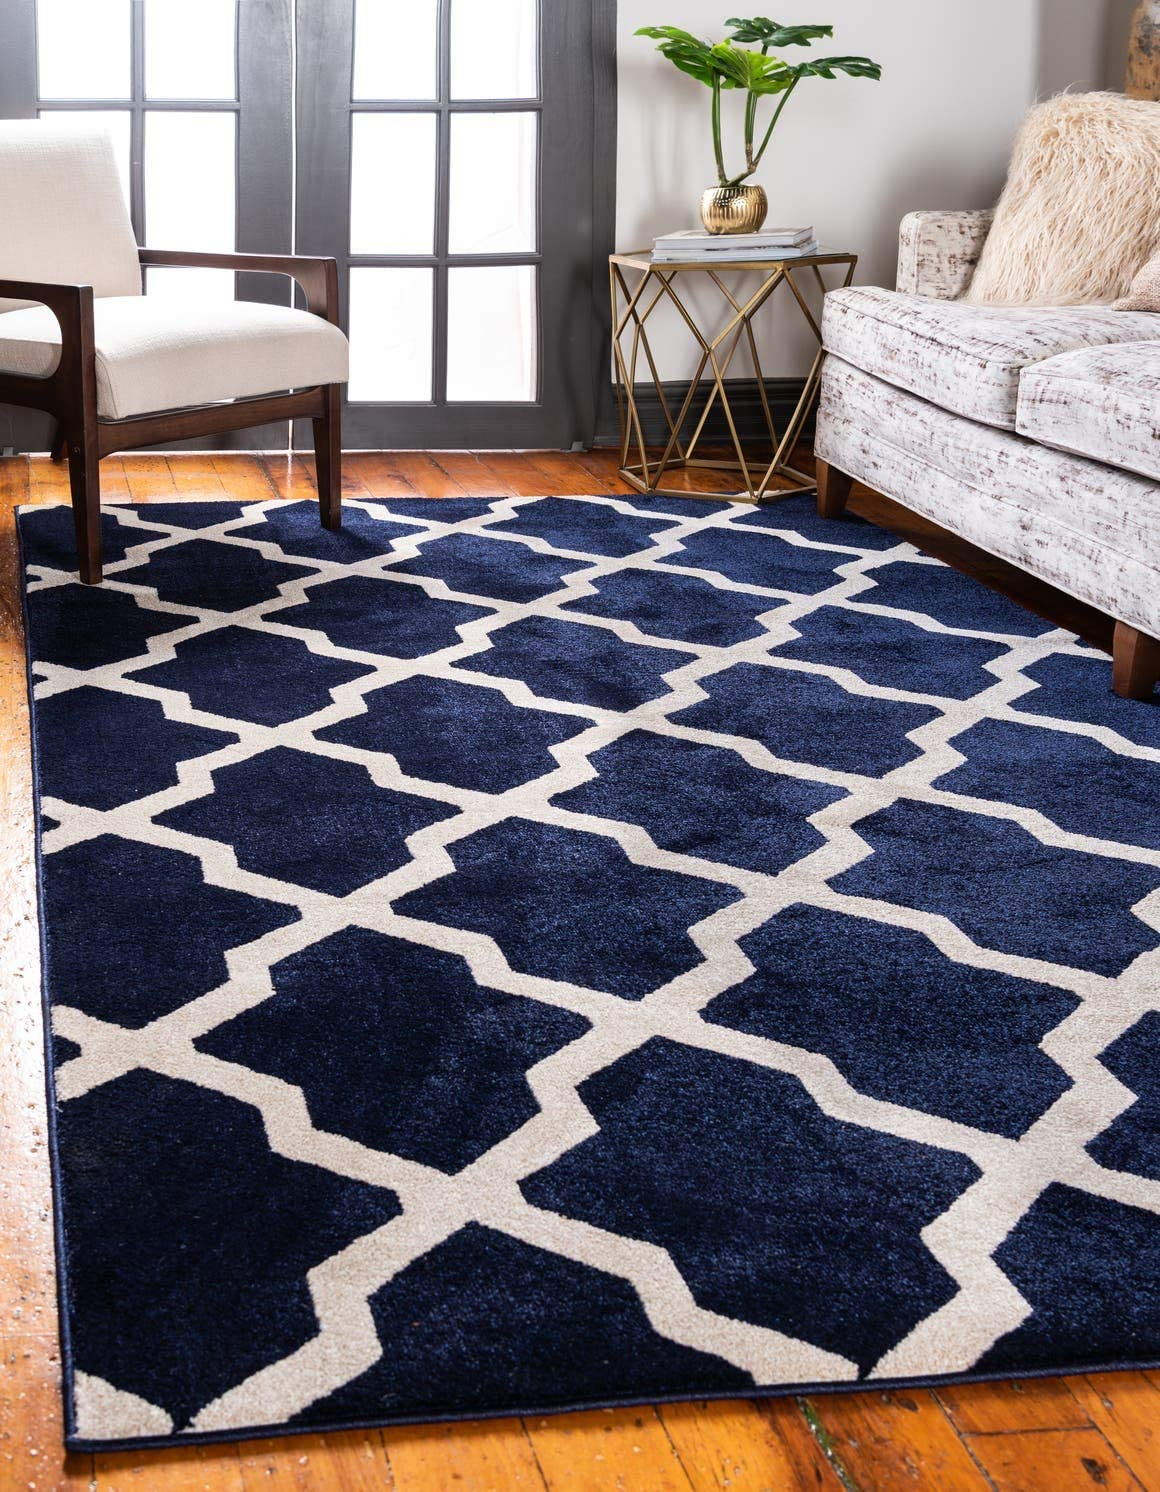 Unique Loom Trellis Collection Geometric Modern Navy Blue Area Rug 5 0 x 8 0